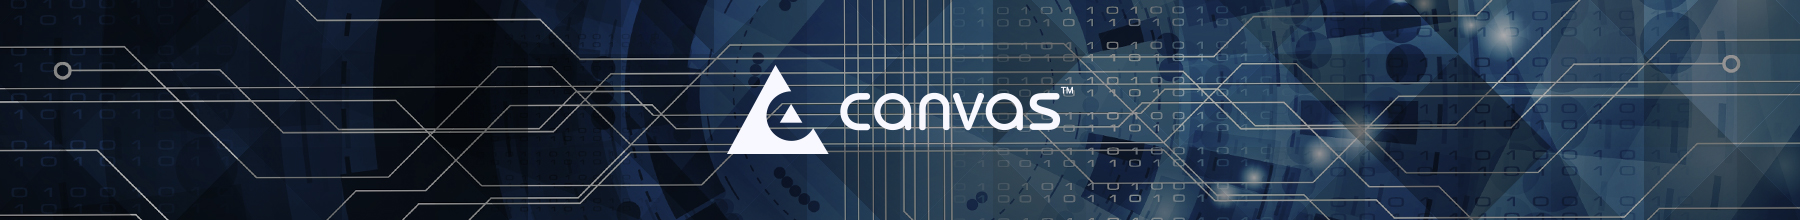 CanvasX product banner